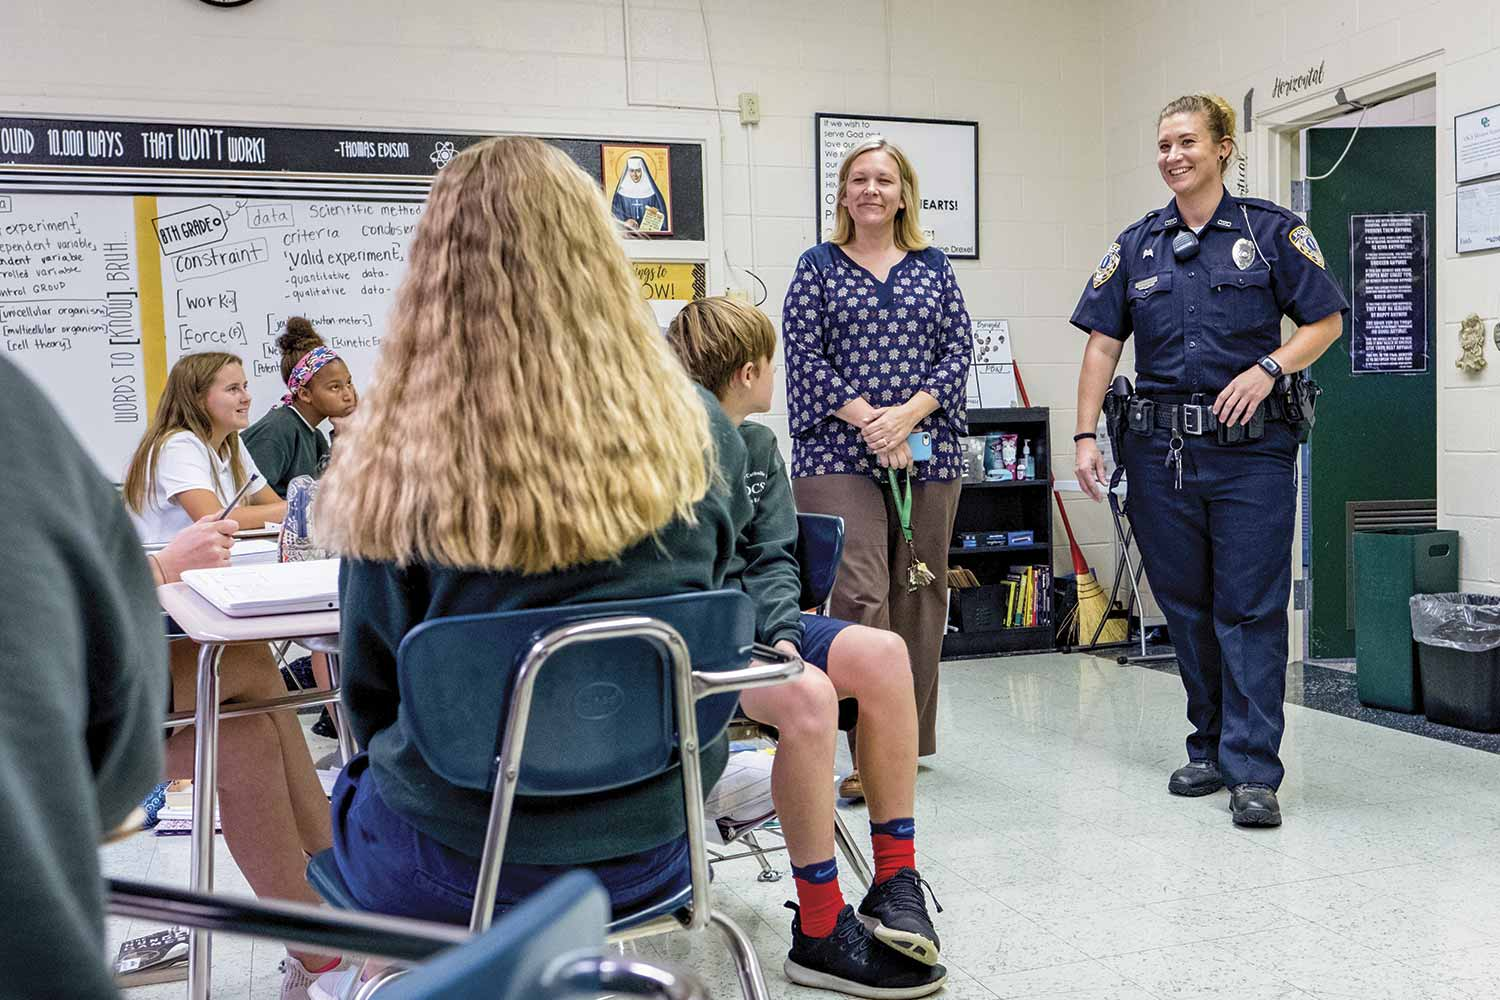 Owensboro Police Officer Jennifer Haynes, right, greets students at Owensboro Catholic Middle School alongside Principal Sara Guth. Haynes serves OCMS as part of Owensboro Police Department's adopt-a-school program. (Photo by Jim Robertson)